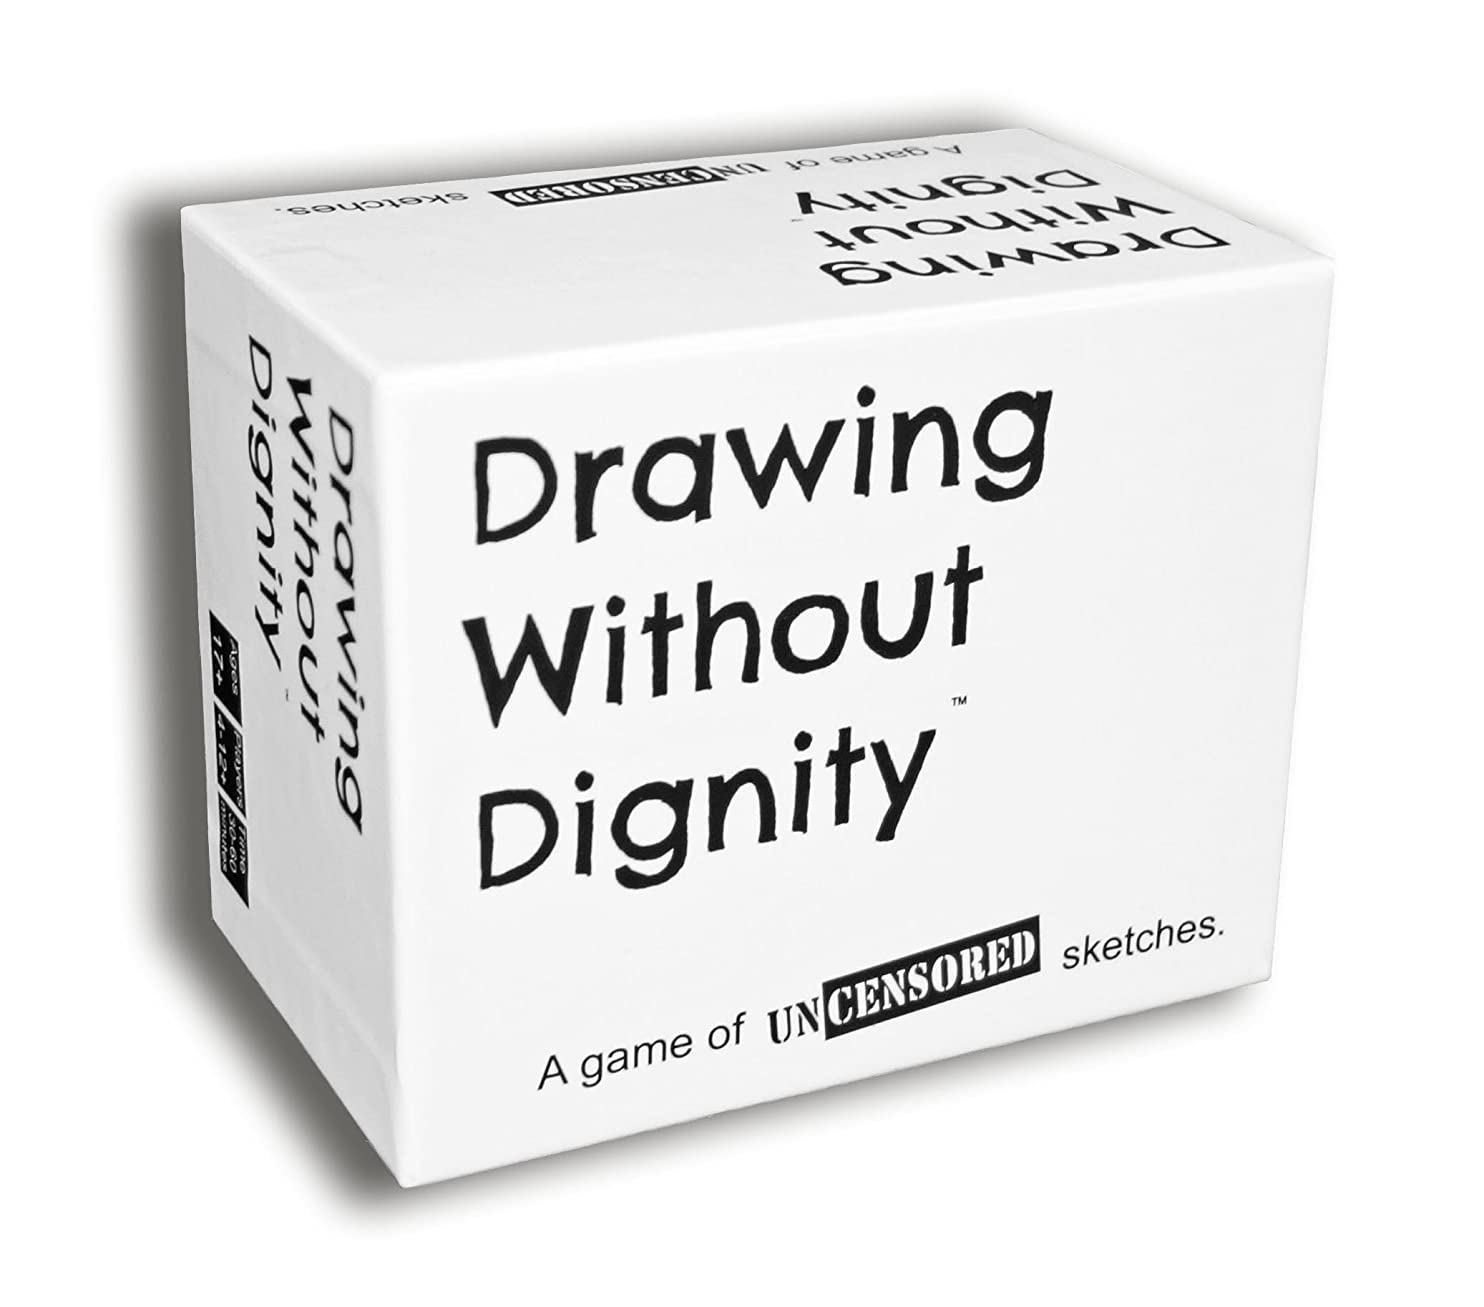 Drawing Without Dignity - an Adult Party Game boaxcfnegkb89